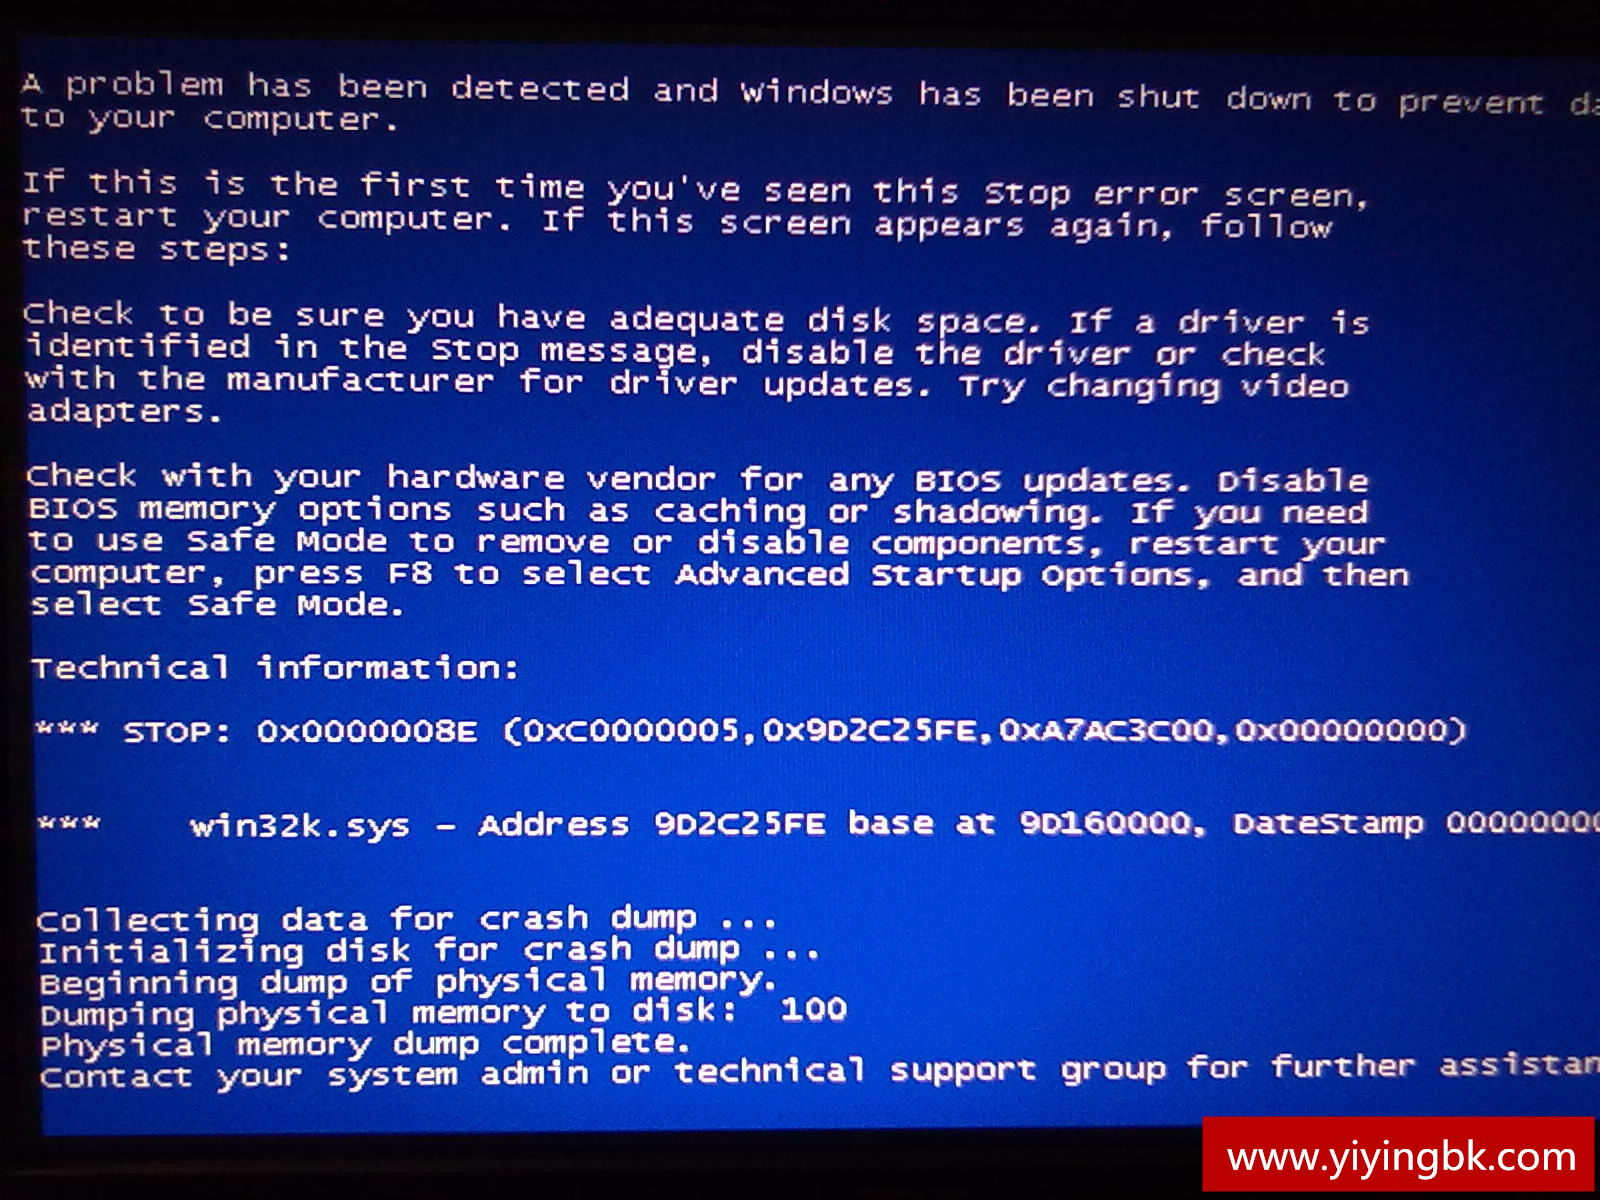 win7蓝屏dumping physical memory to disk 100